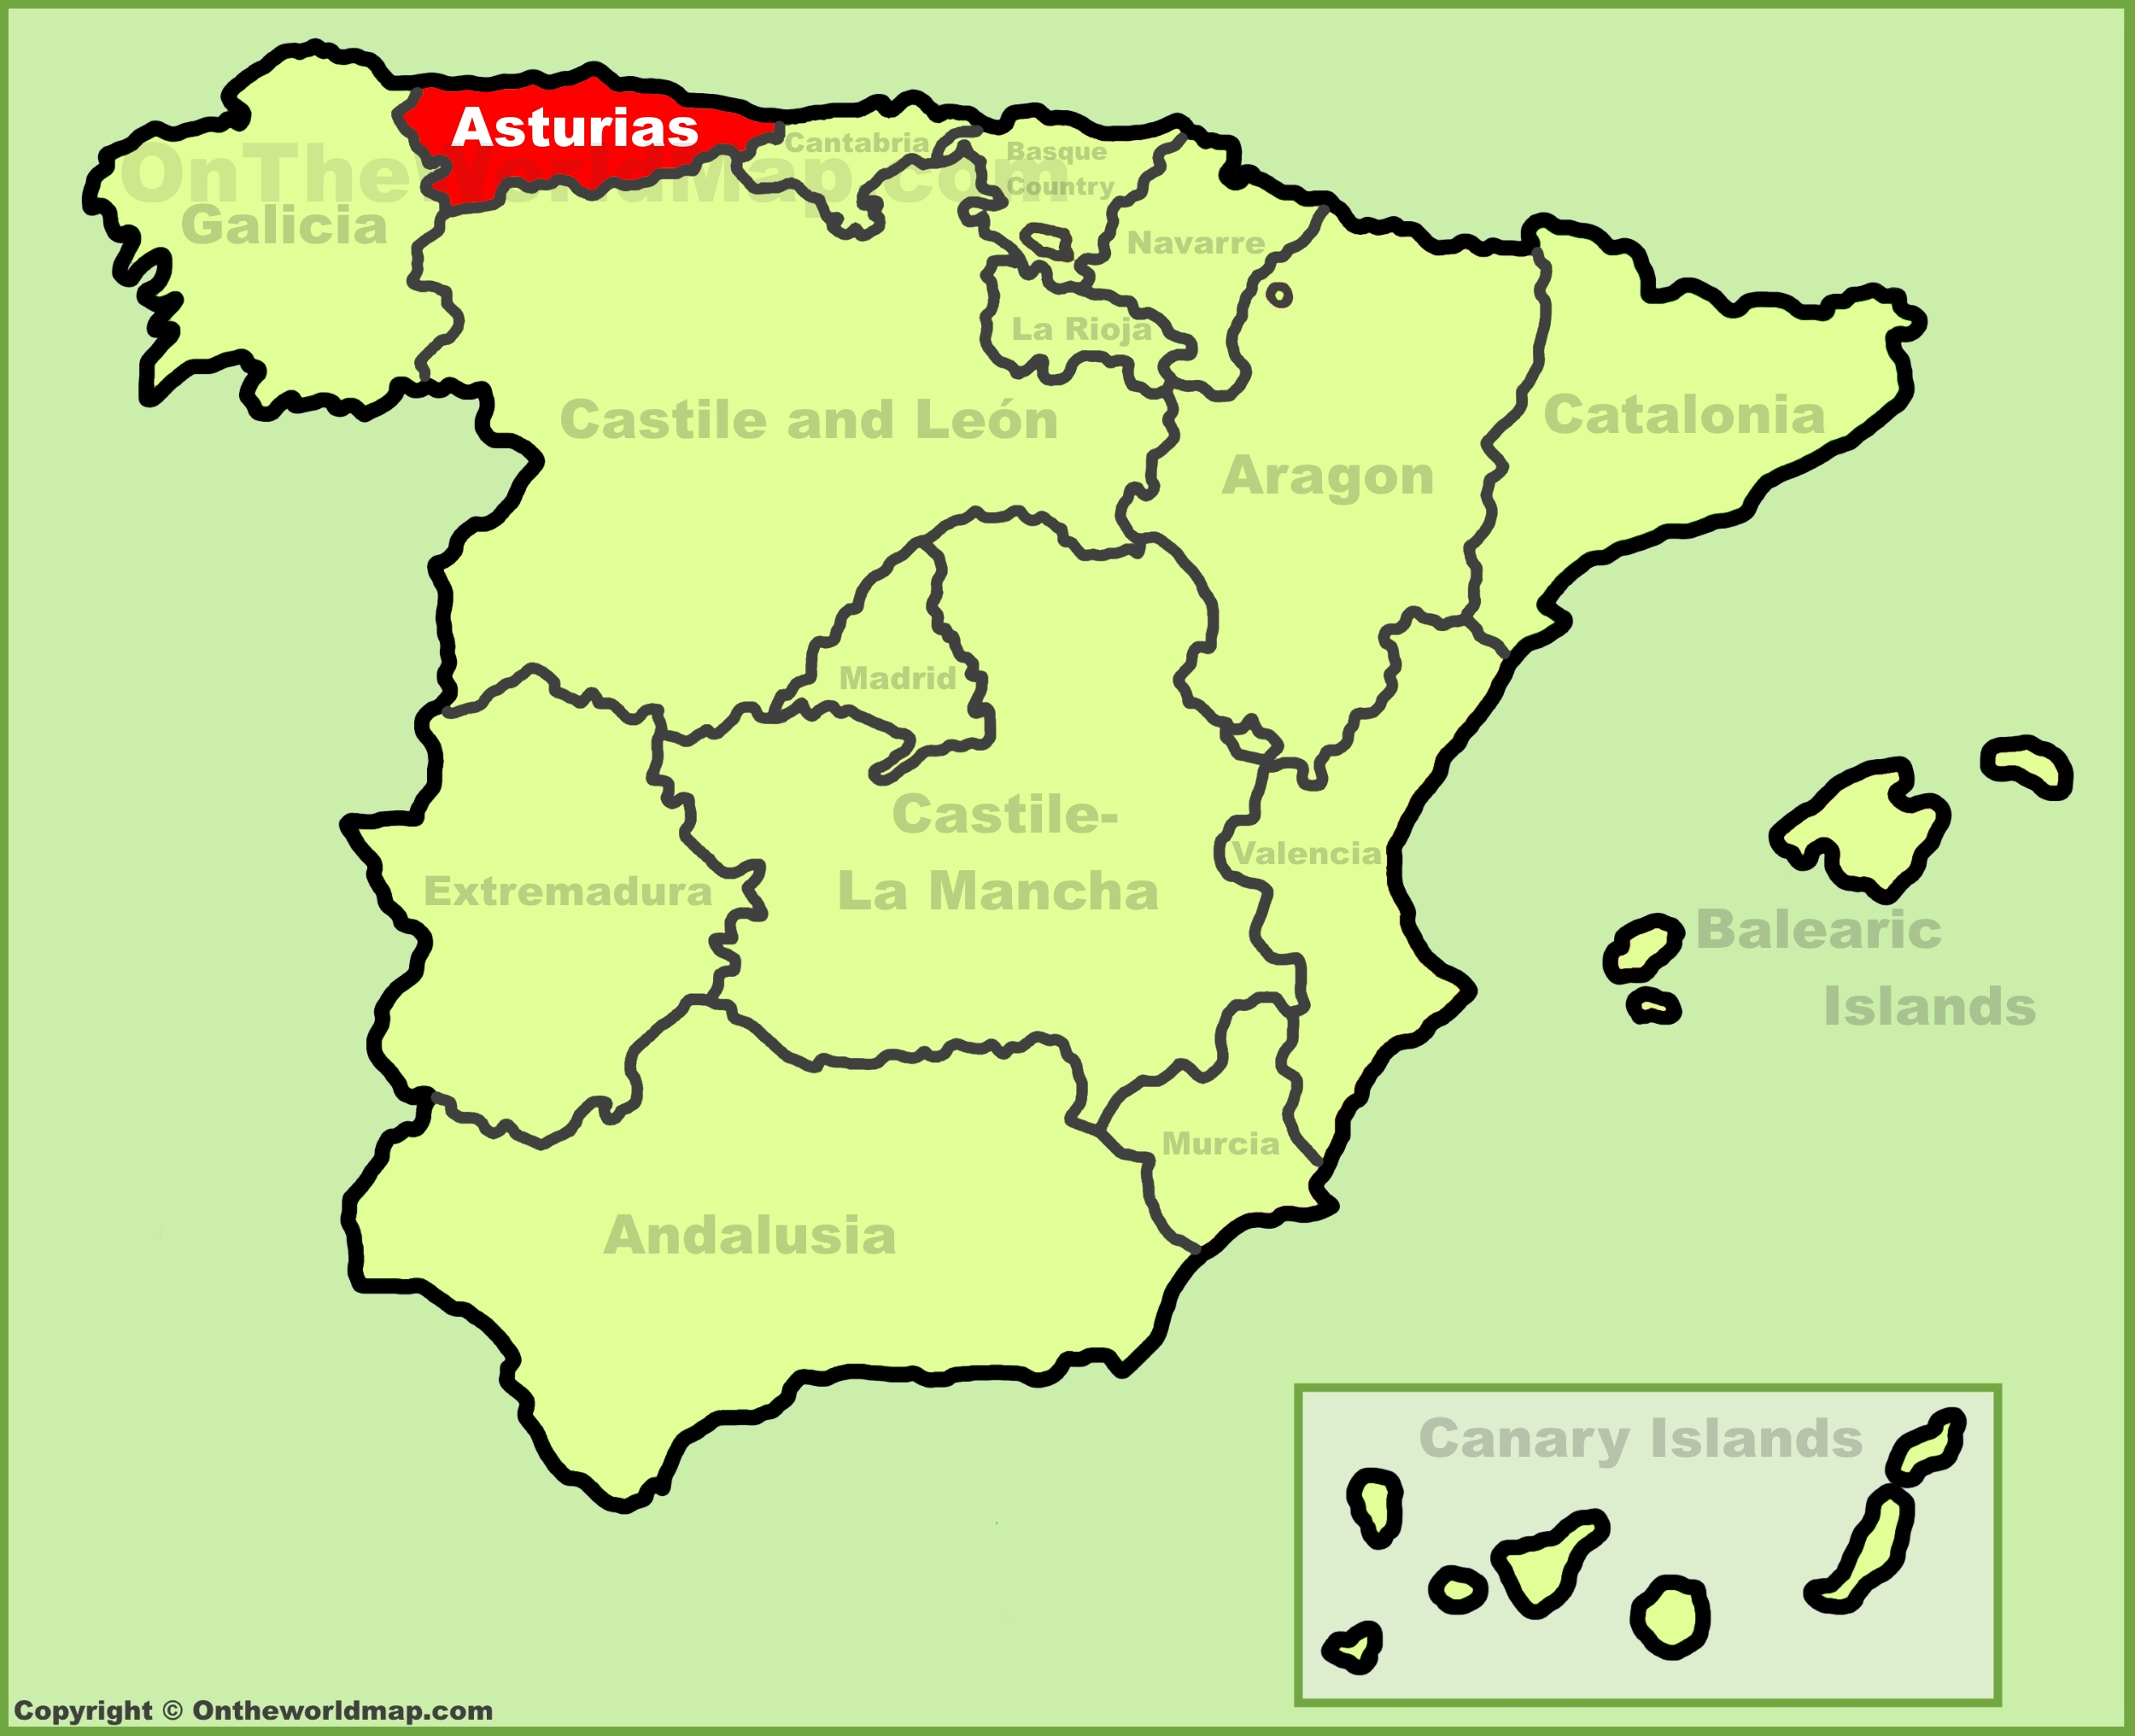 Asturias location on the Spain map